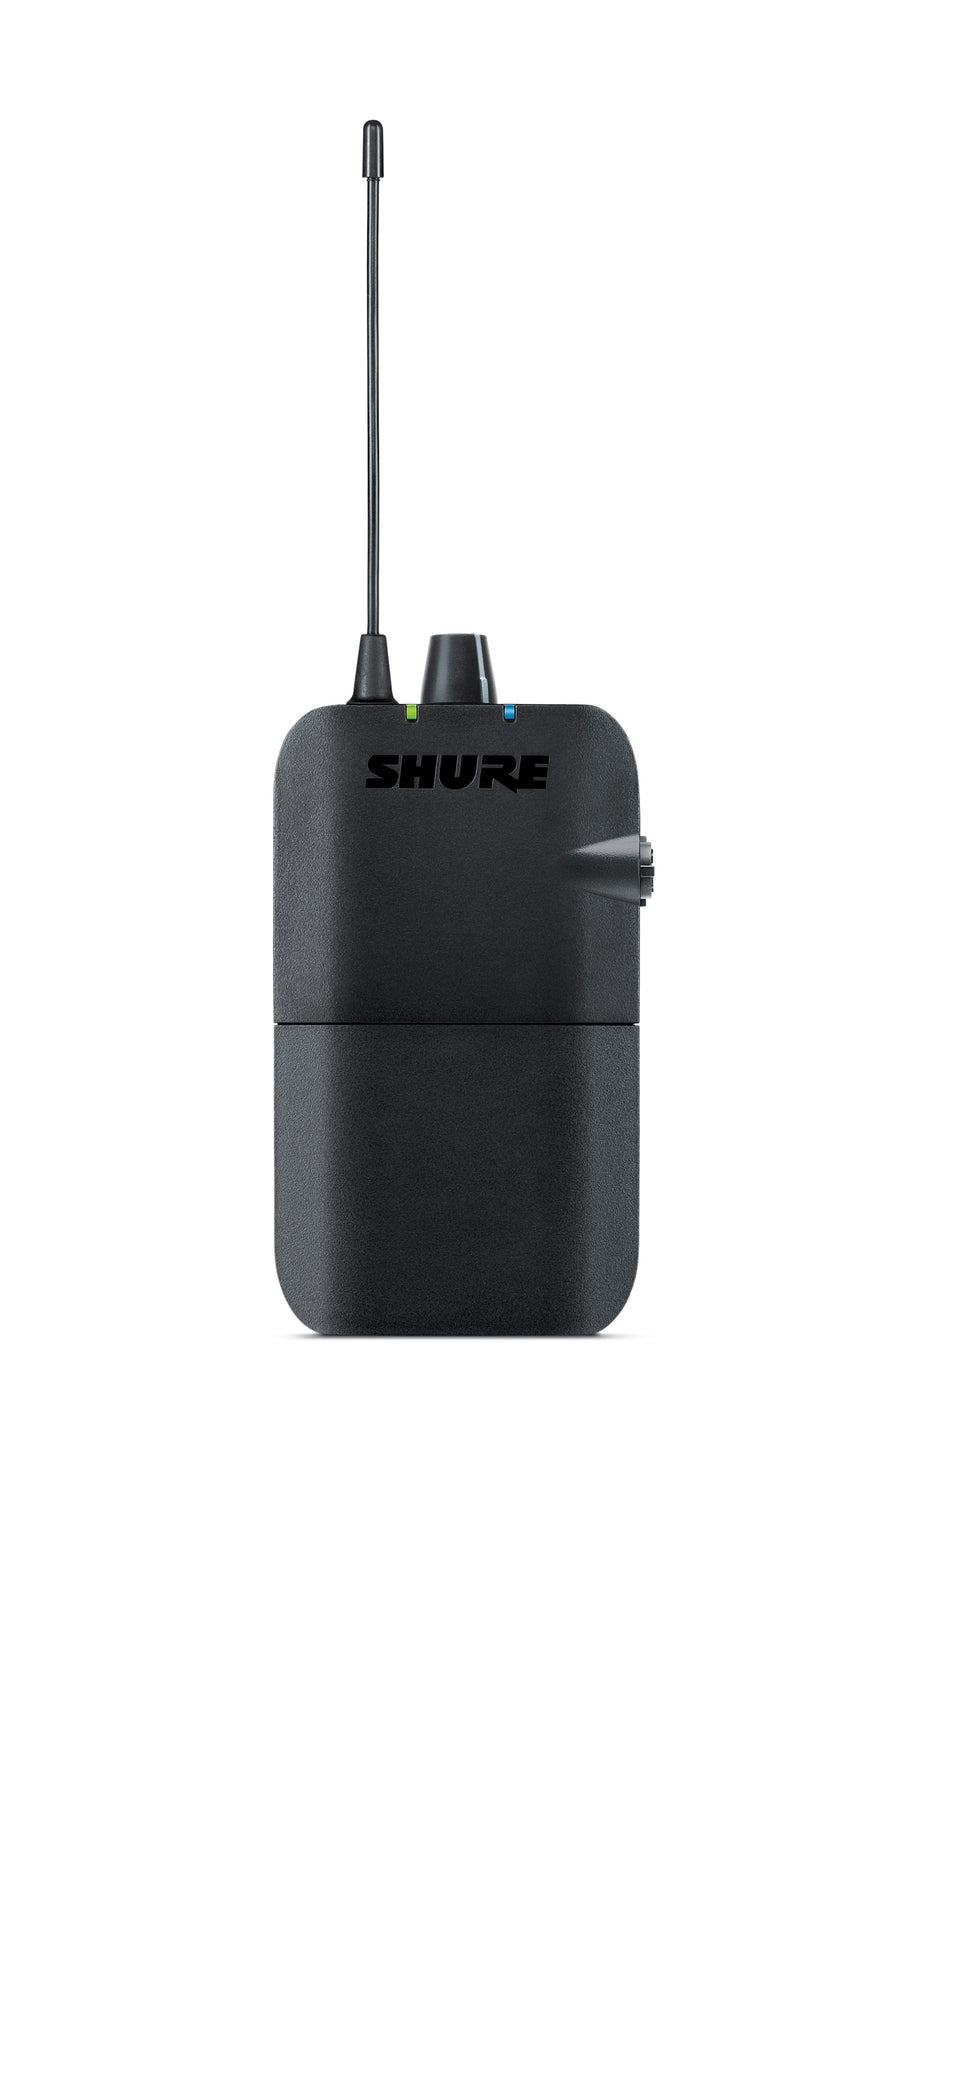 Shure P3R Wireless Bodypack Receiver For Shure P3T Transmitter